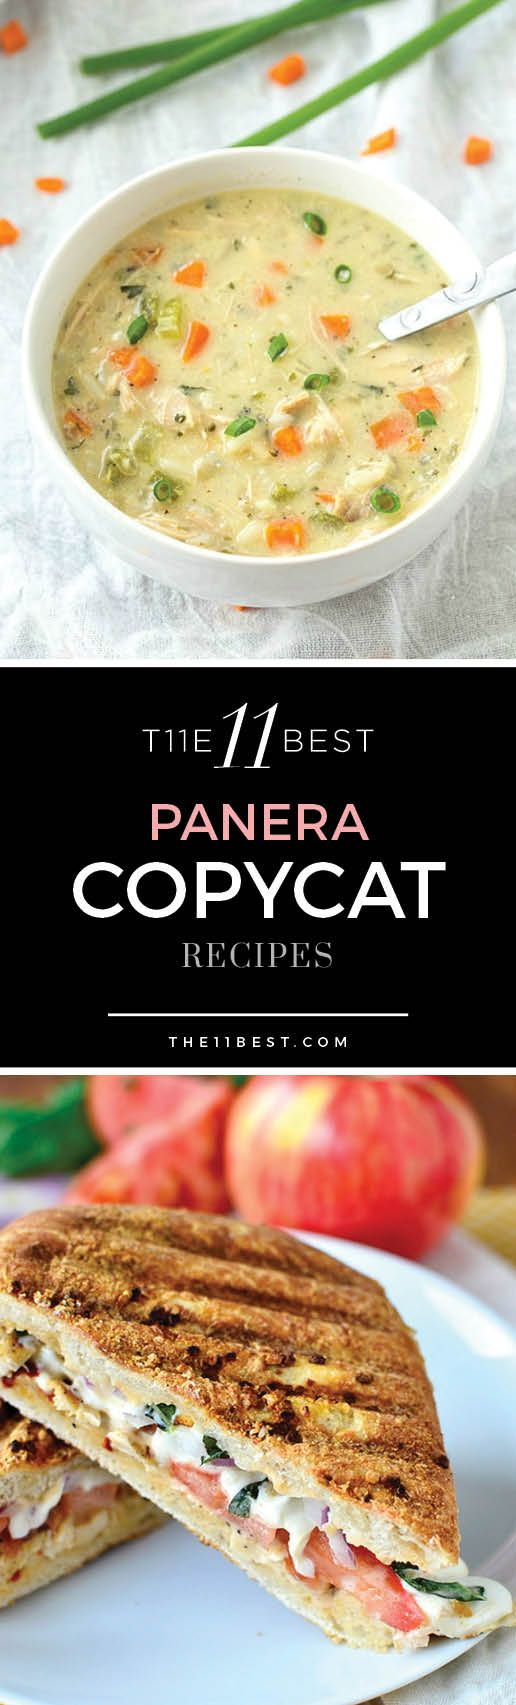 The 11 Best Copycat Panera Recipes